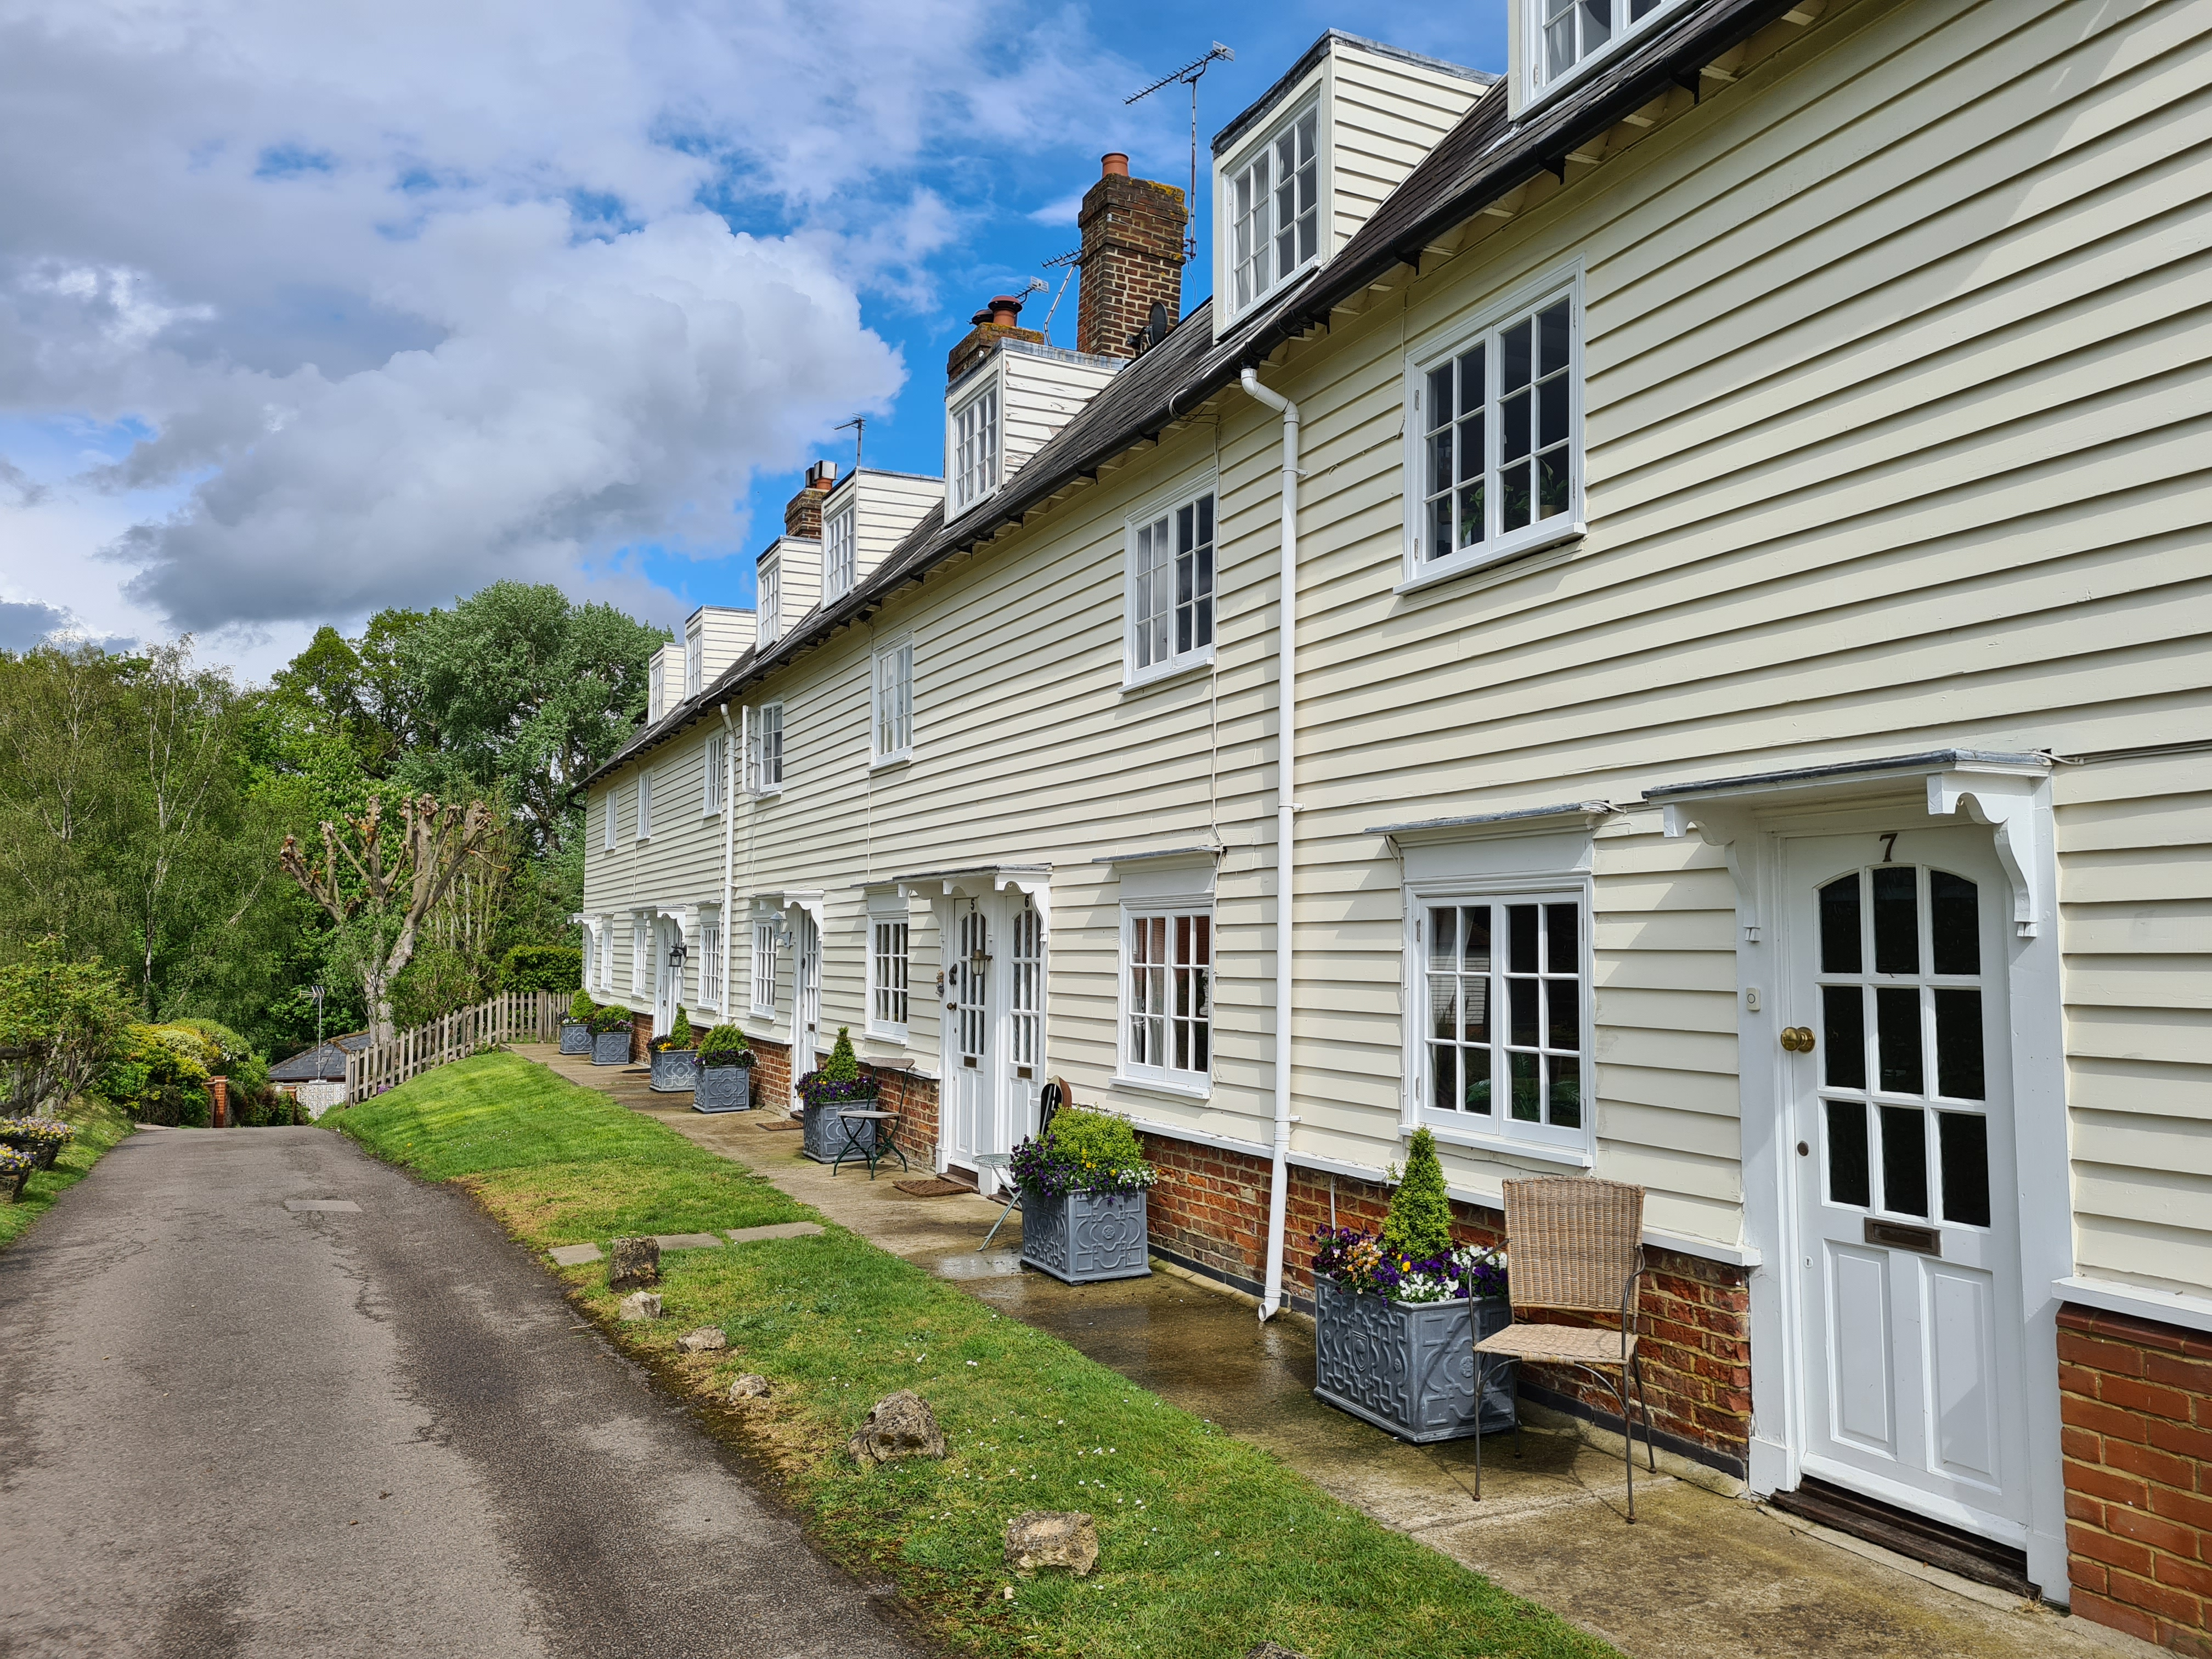 Mill Cottages West Farleigh